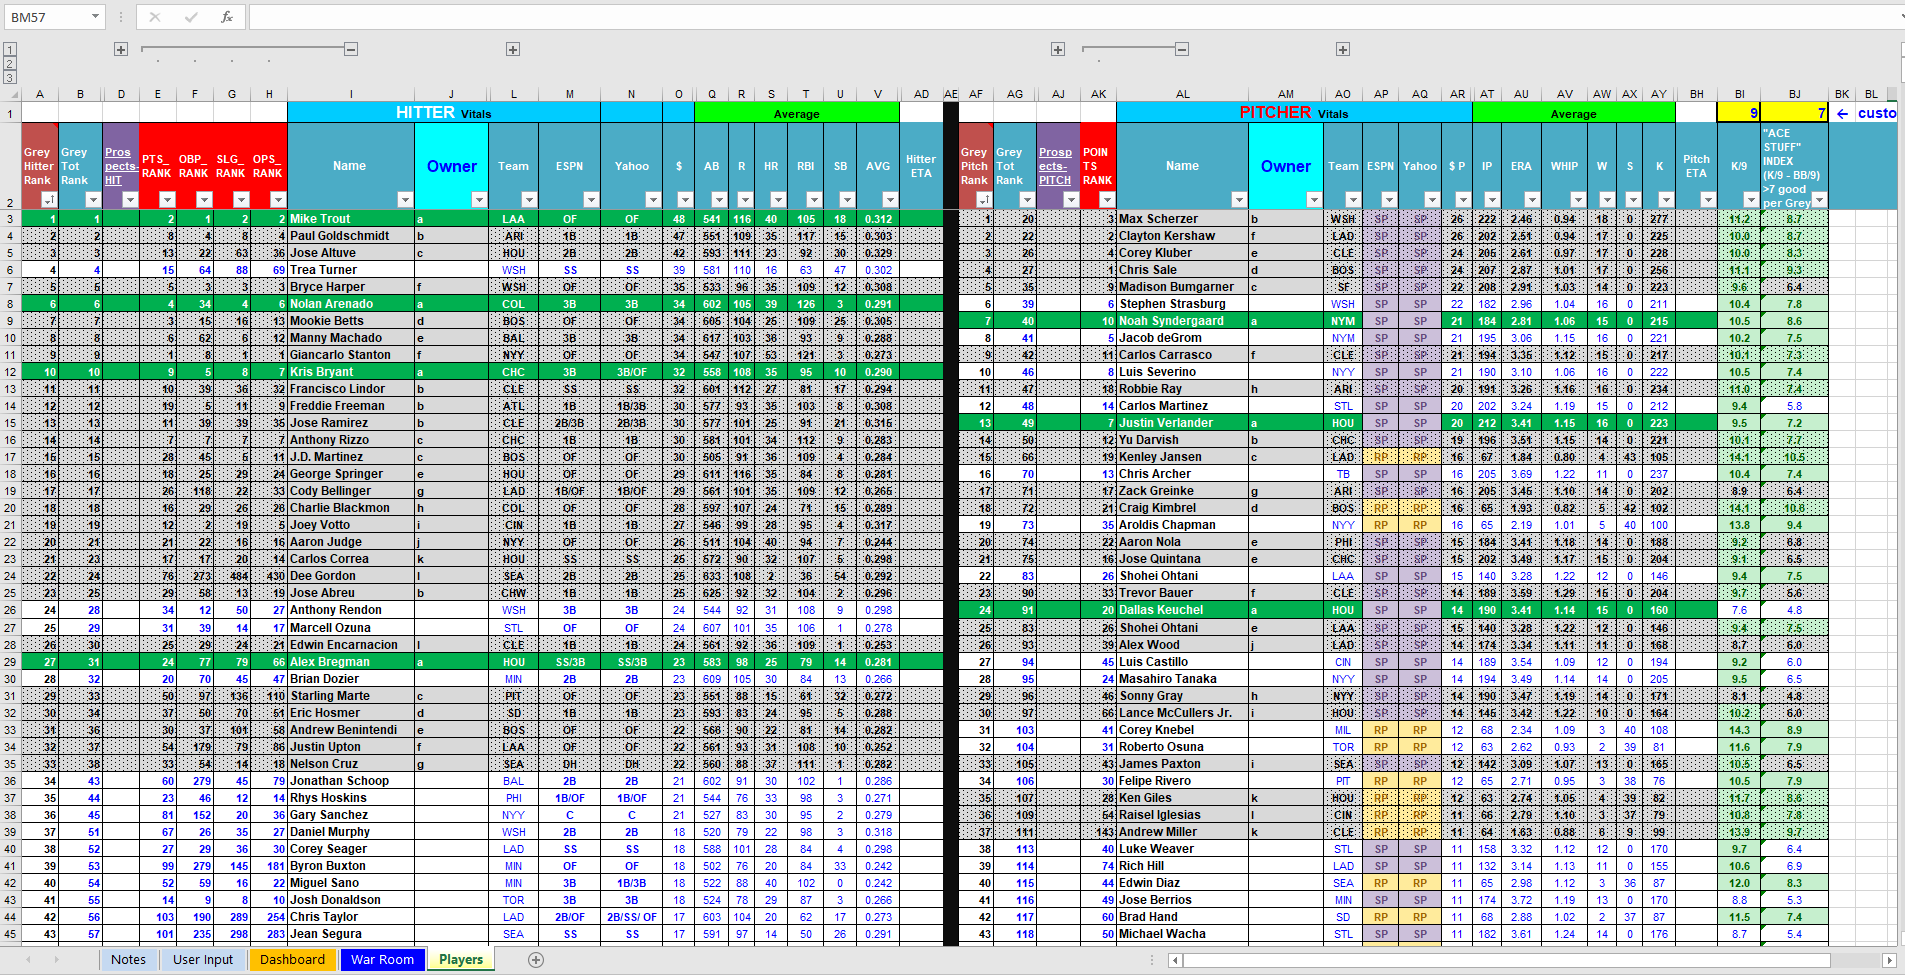 Here Are Some Screenshots Of The 2018 Spreadsheet In Action Showing Link Between Players And Dashboard Tabs Revamped War Room Tab Click For